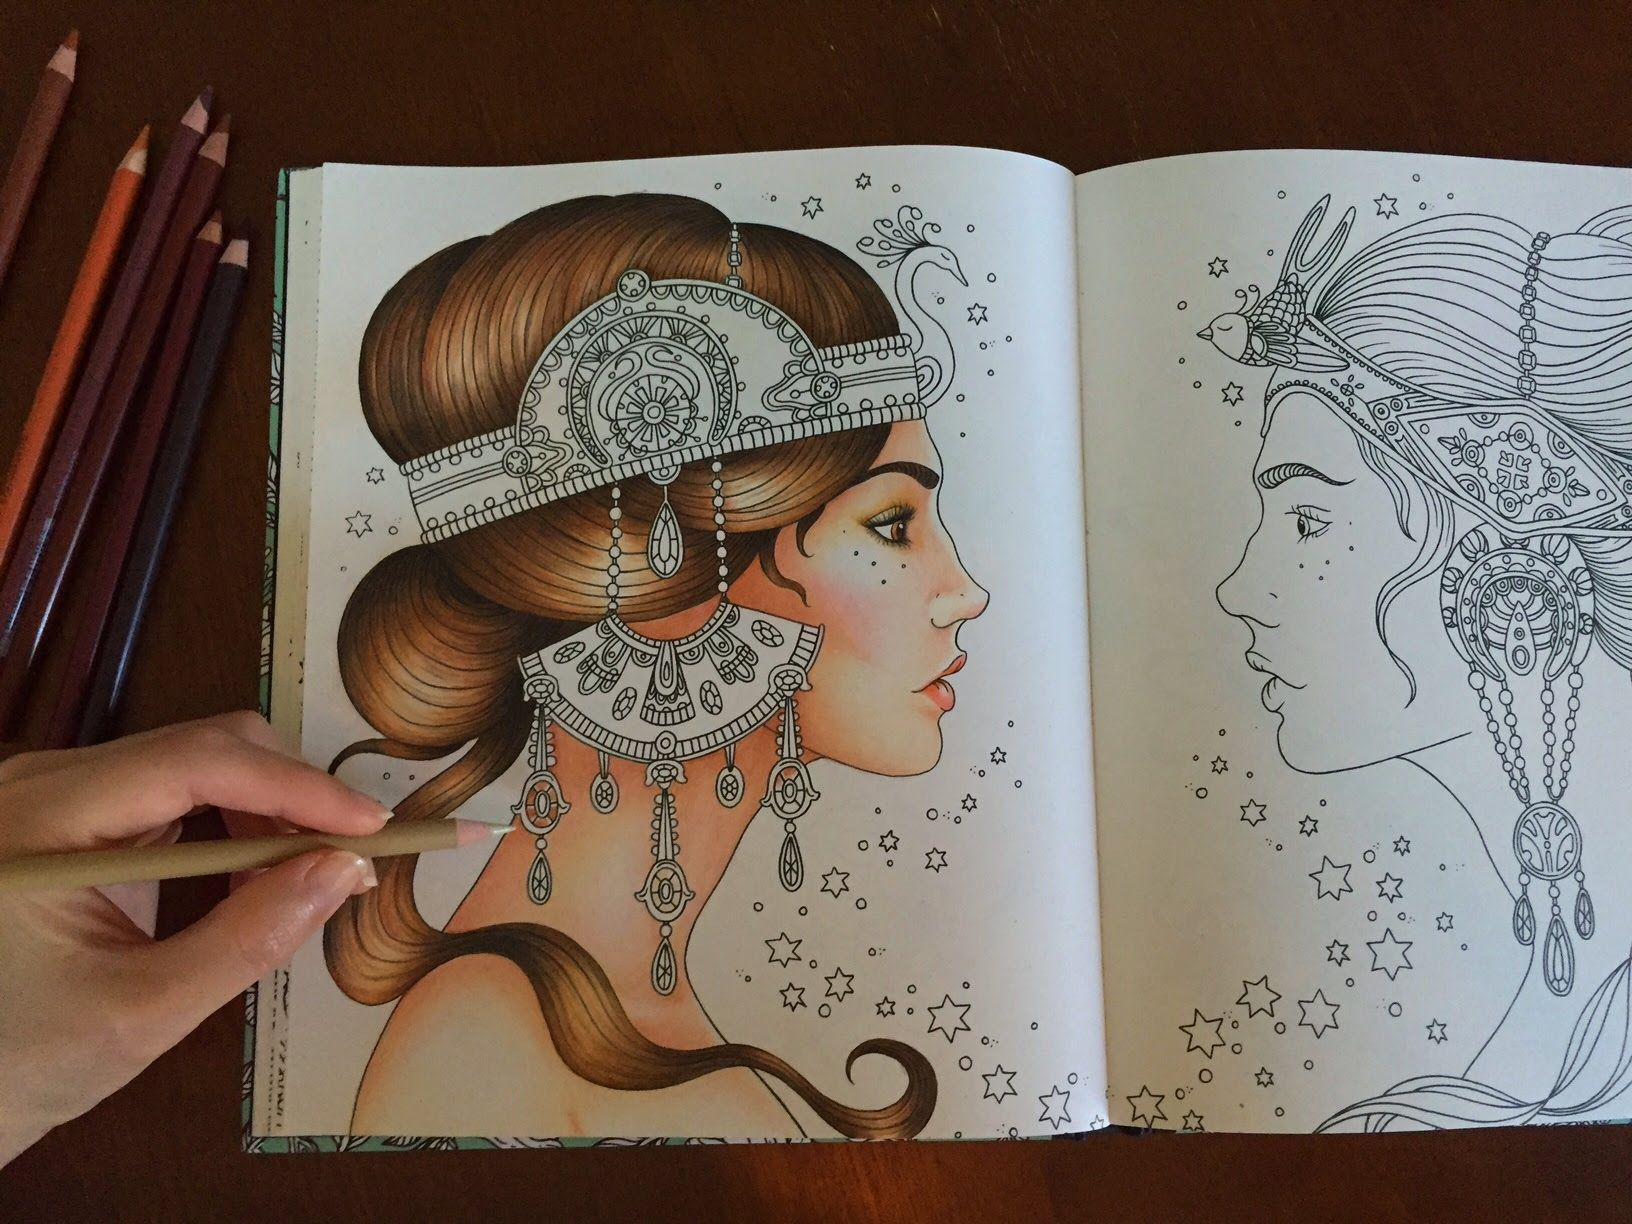 Coloring With Colored Pencils Coloring Book: Dagdrömmar / Daydreams ...